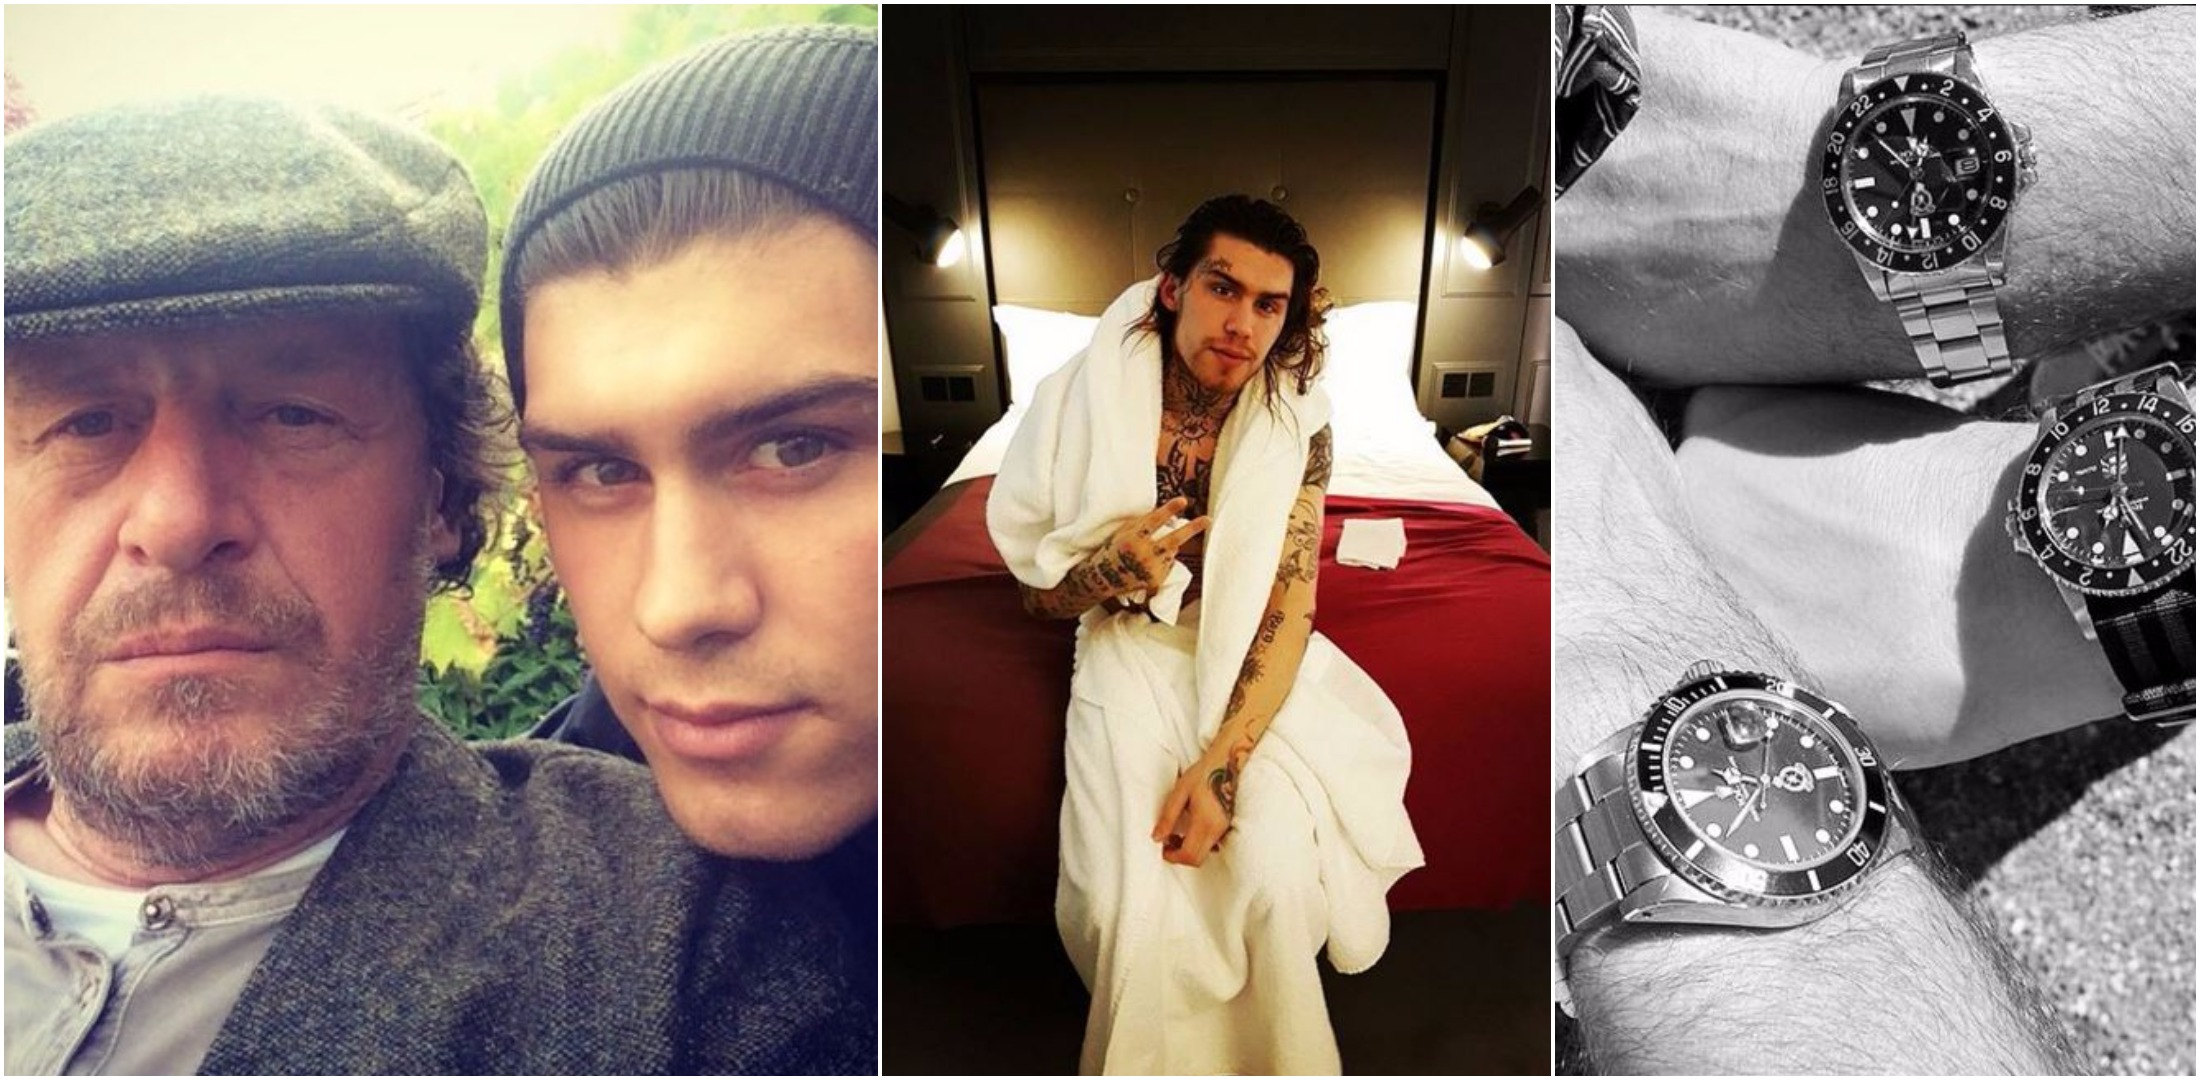 Big Brother star Marco Pierre White Jr. is basically a Rich Kid of Instagram